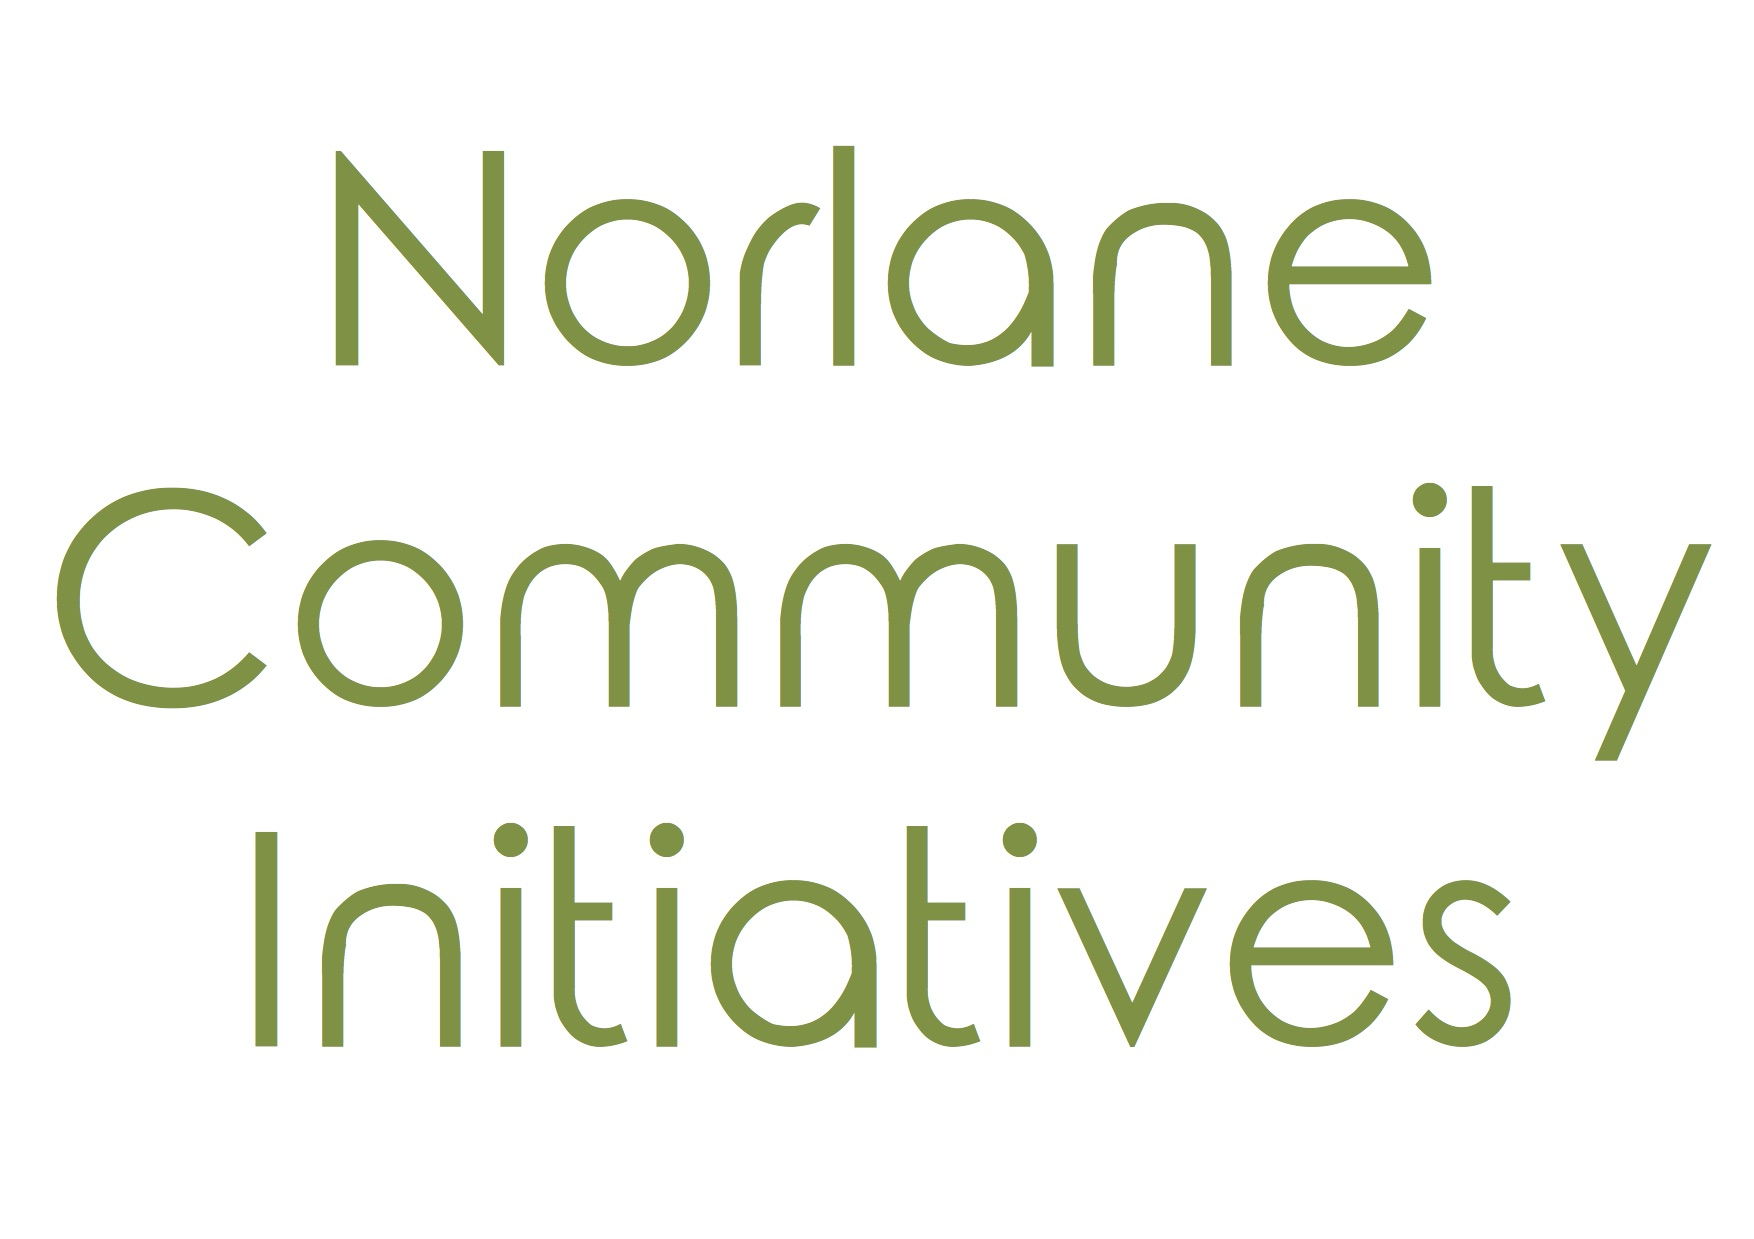 Developed by the community, for the community, Norlane Community Initiatives works to address community needs, including social isolation, family support, food insecurity, health and wellbeing. -